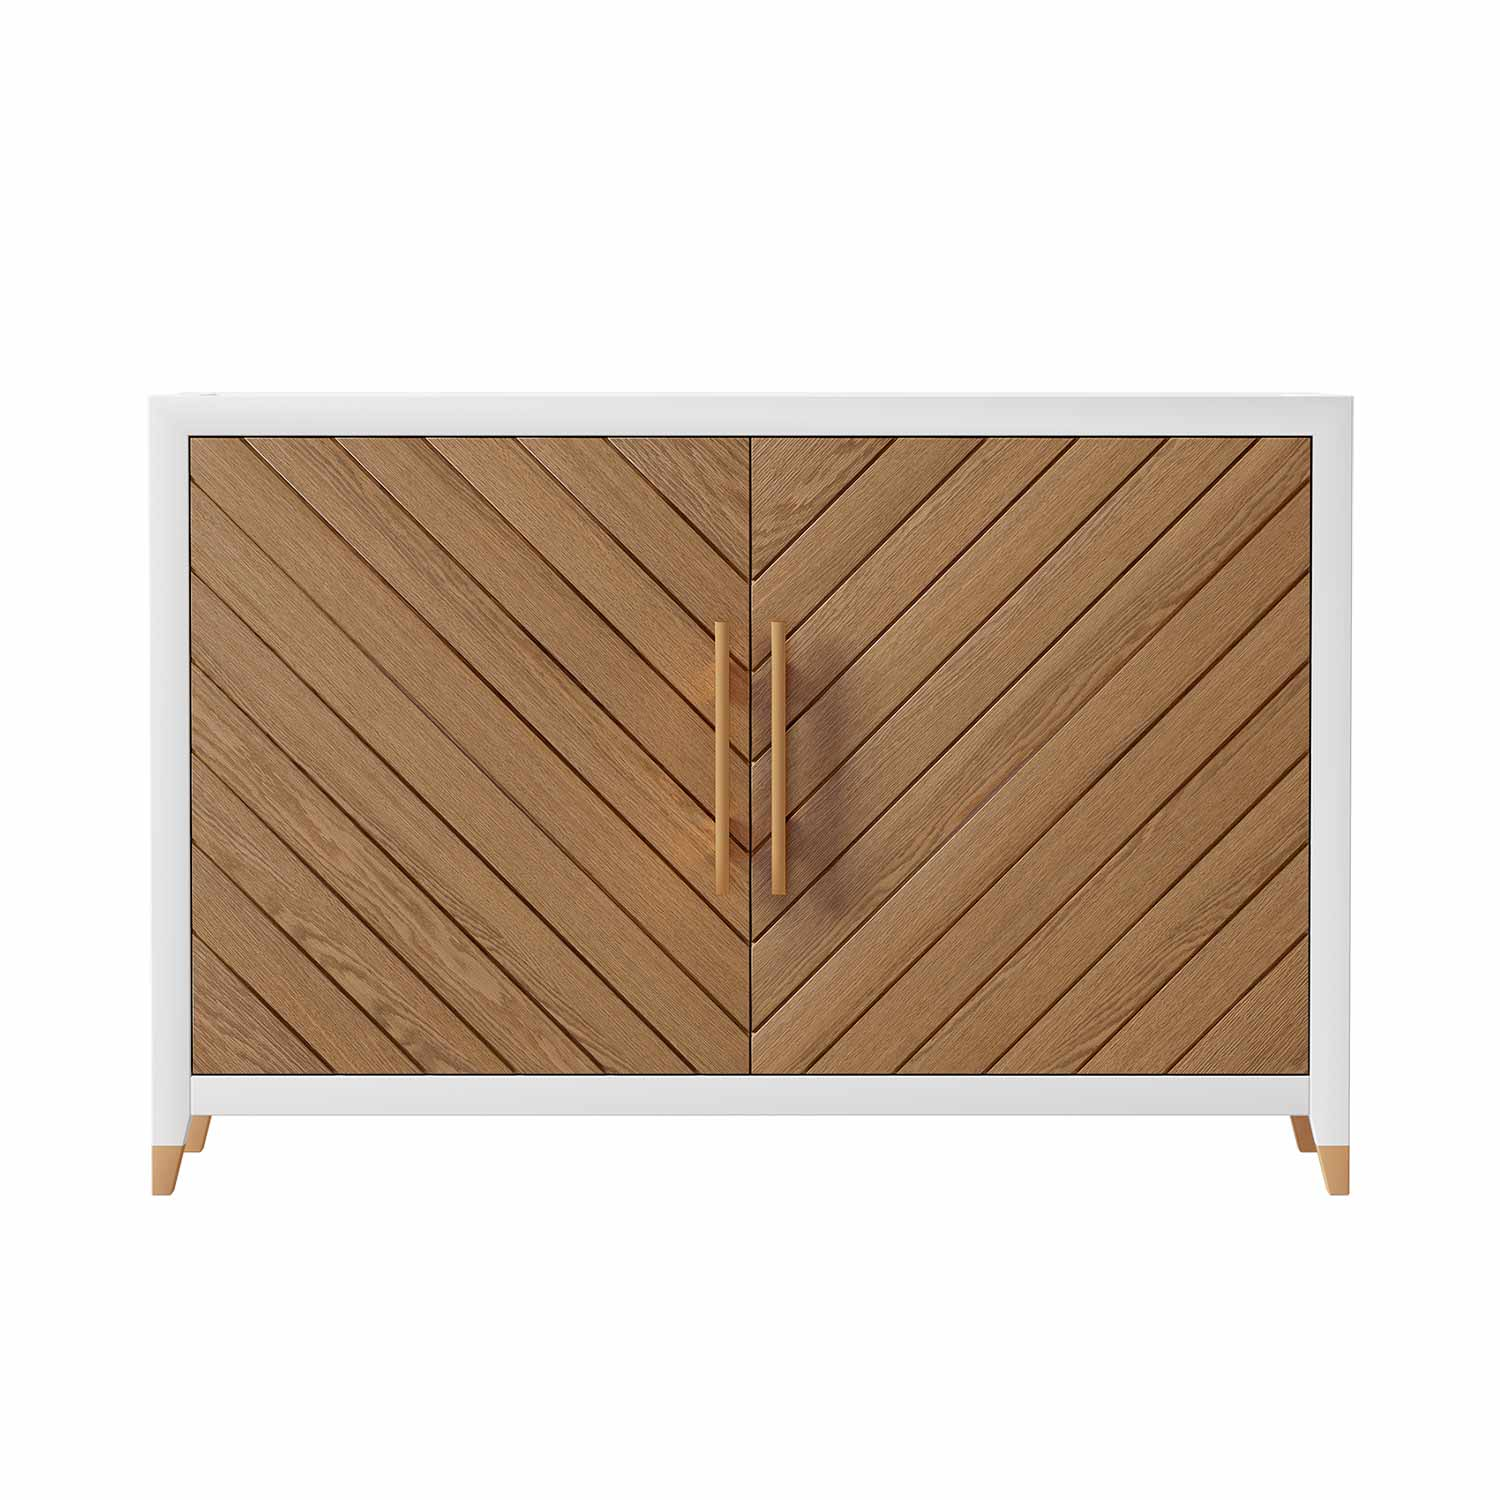 Chest-drawers-N1-Arnika-1